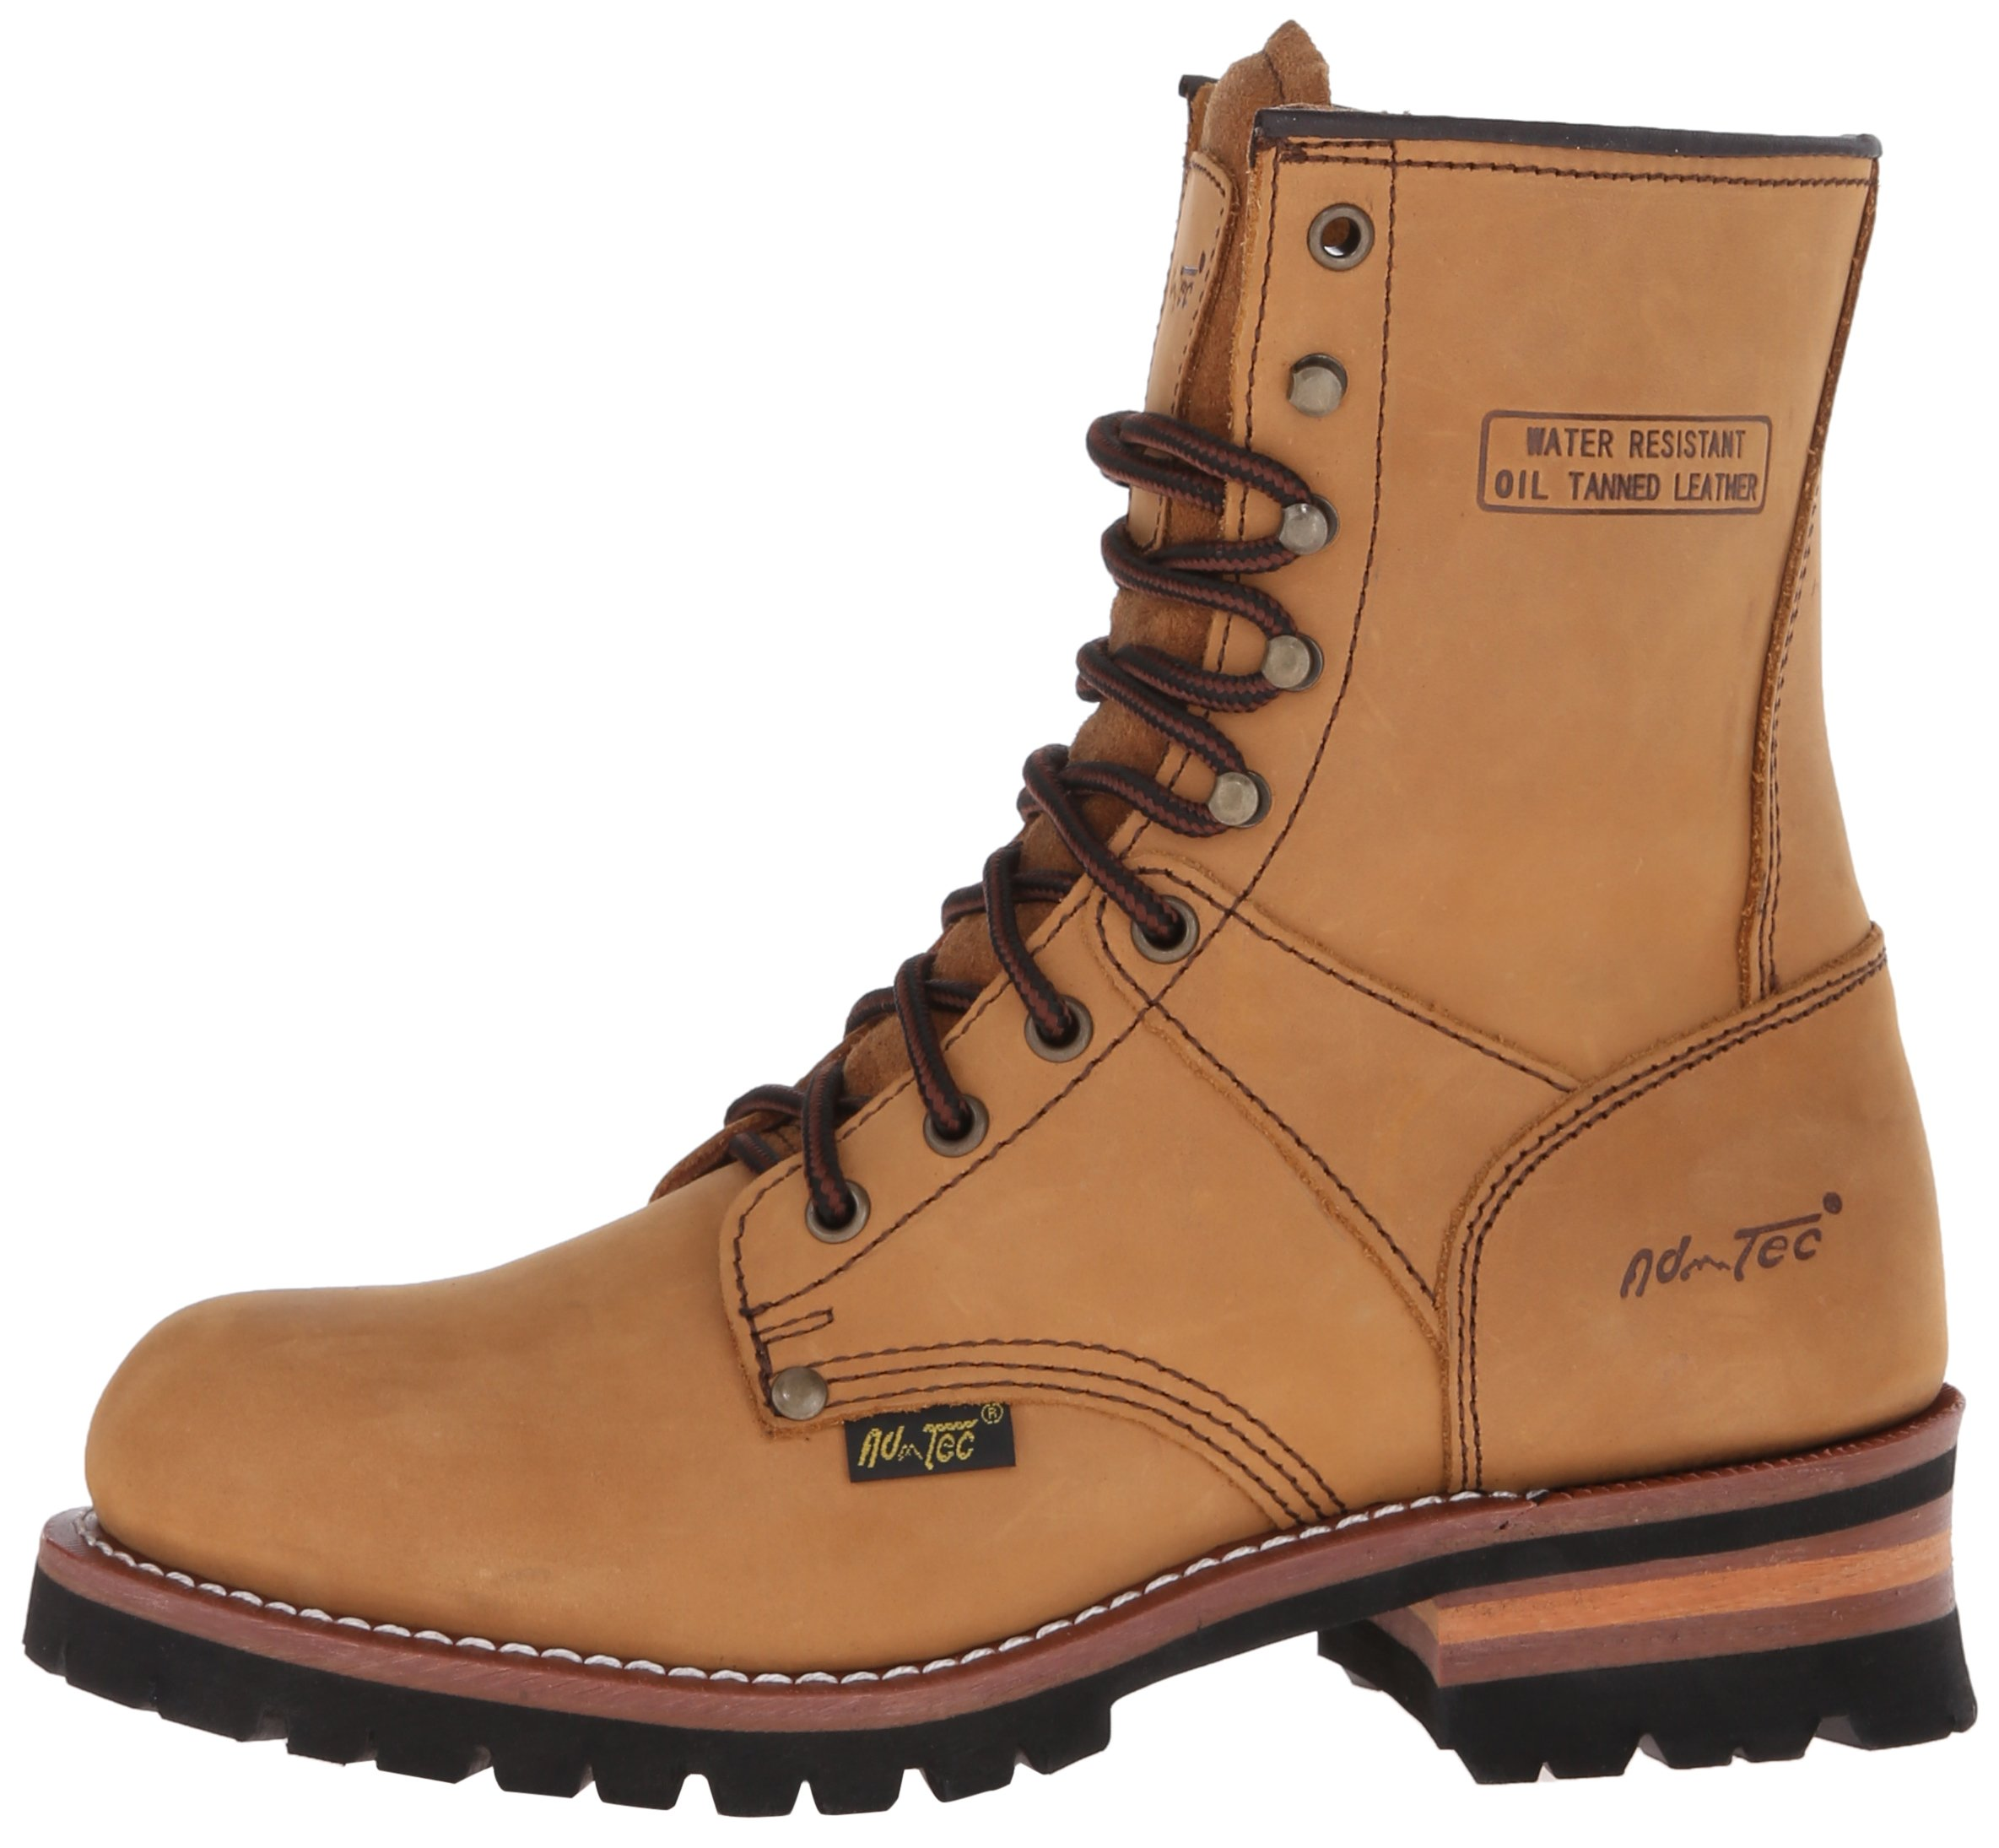 Adtec Men's 9 inch Logger Boot, Brown, 9 W US by Adtec (Image #5)